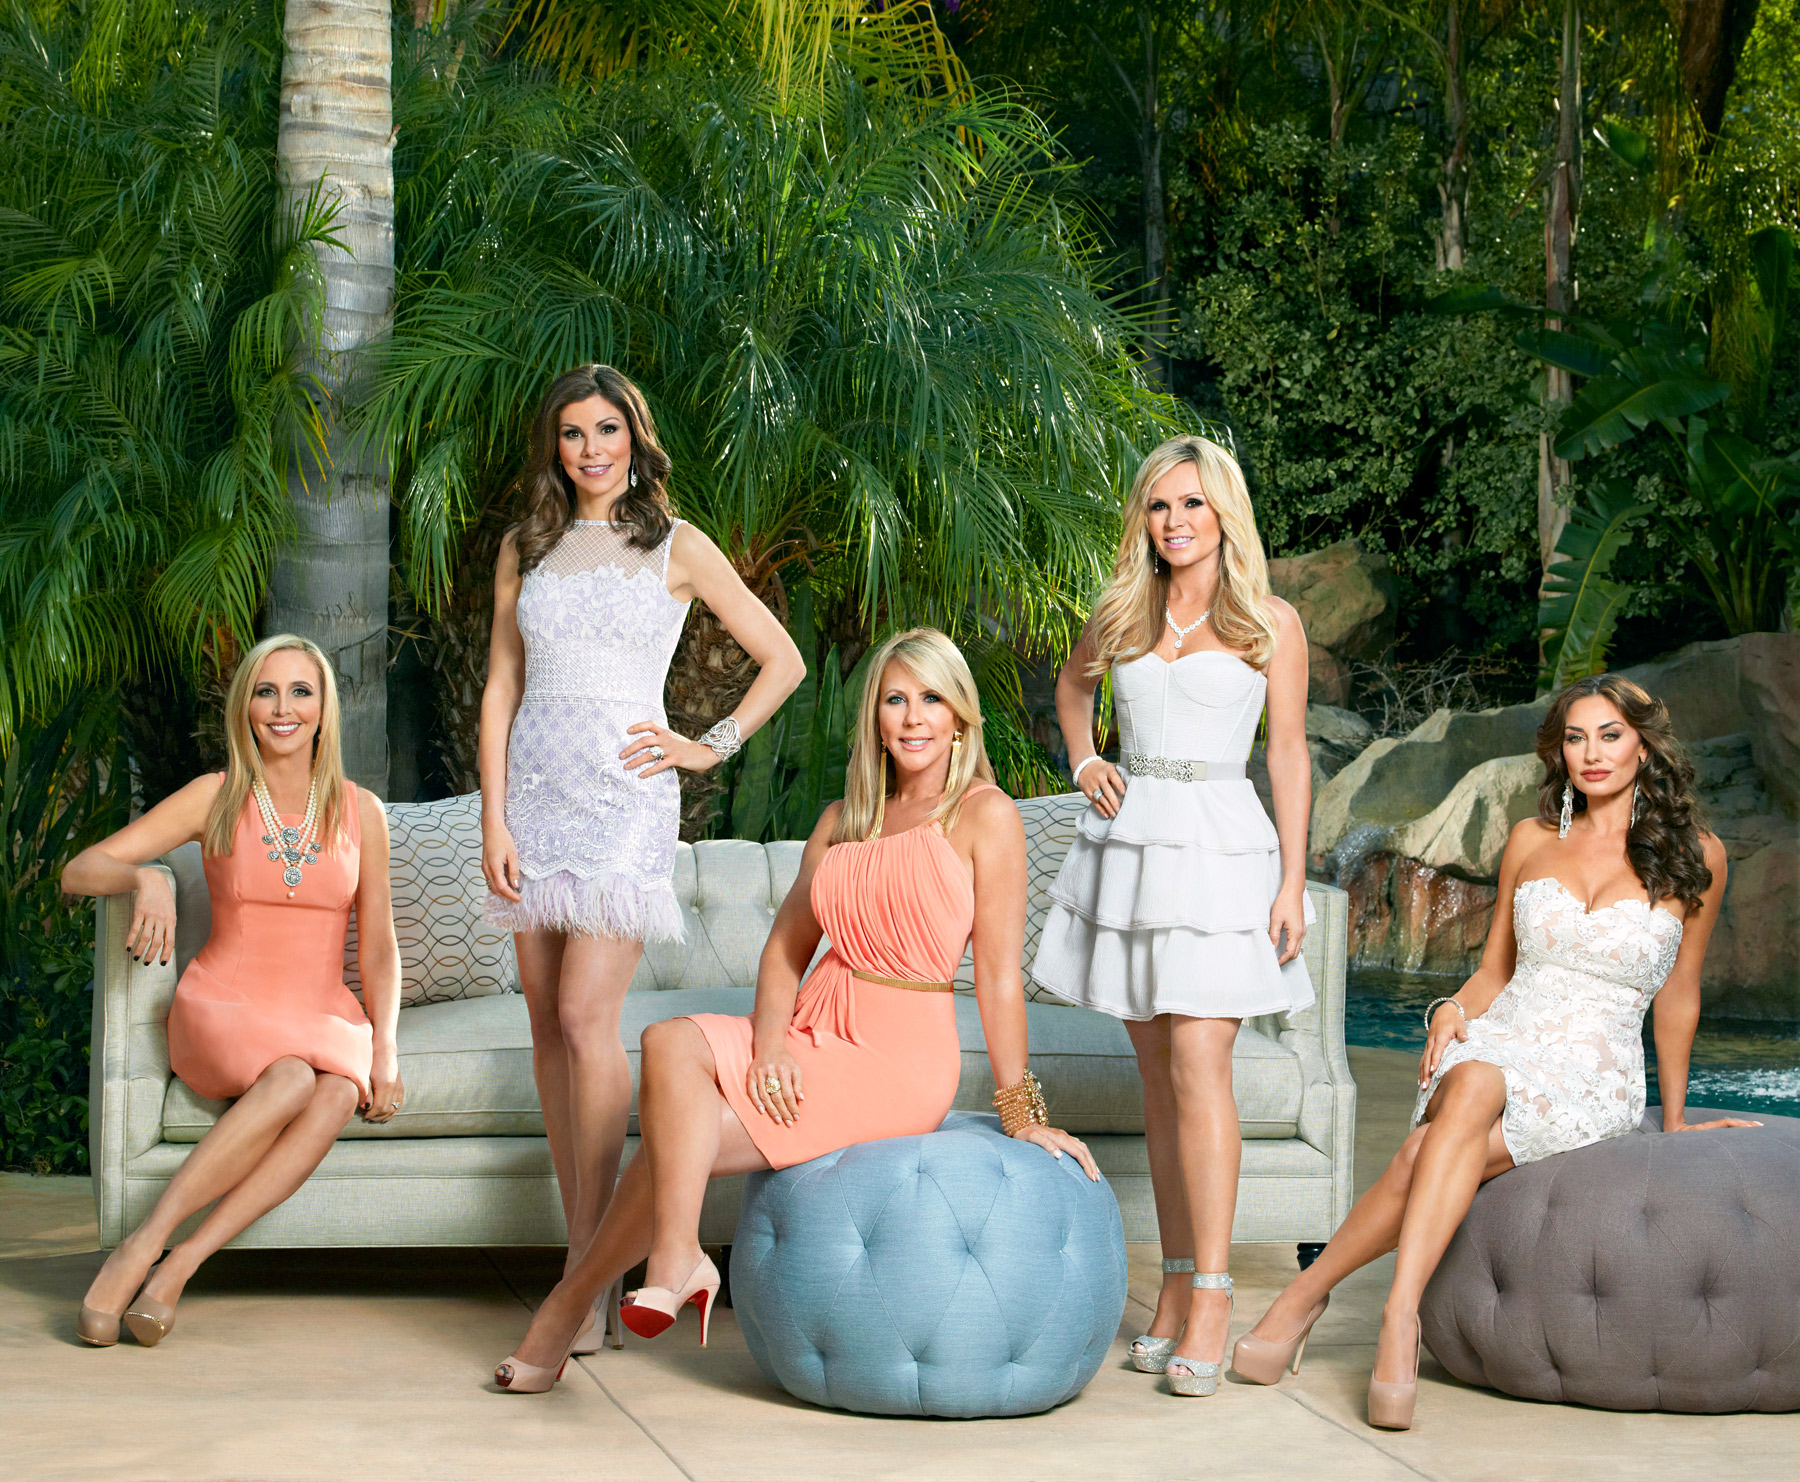 The Real Housewives of Orange County Image